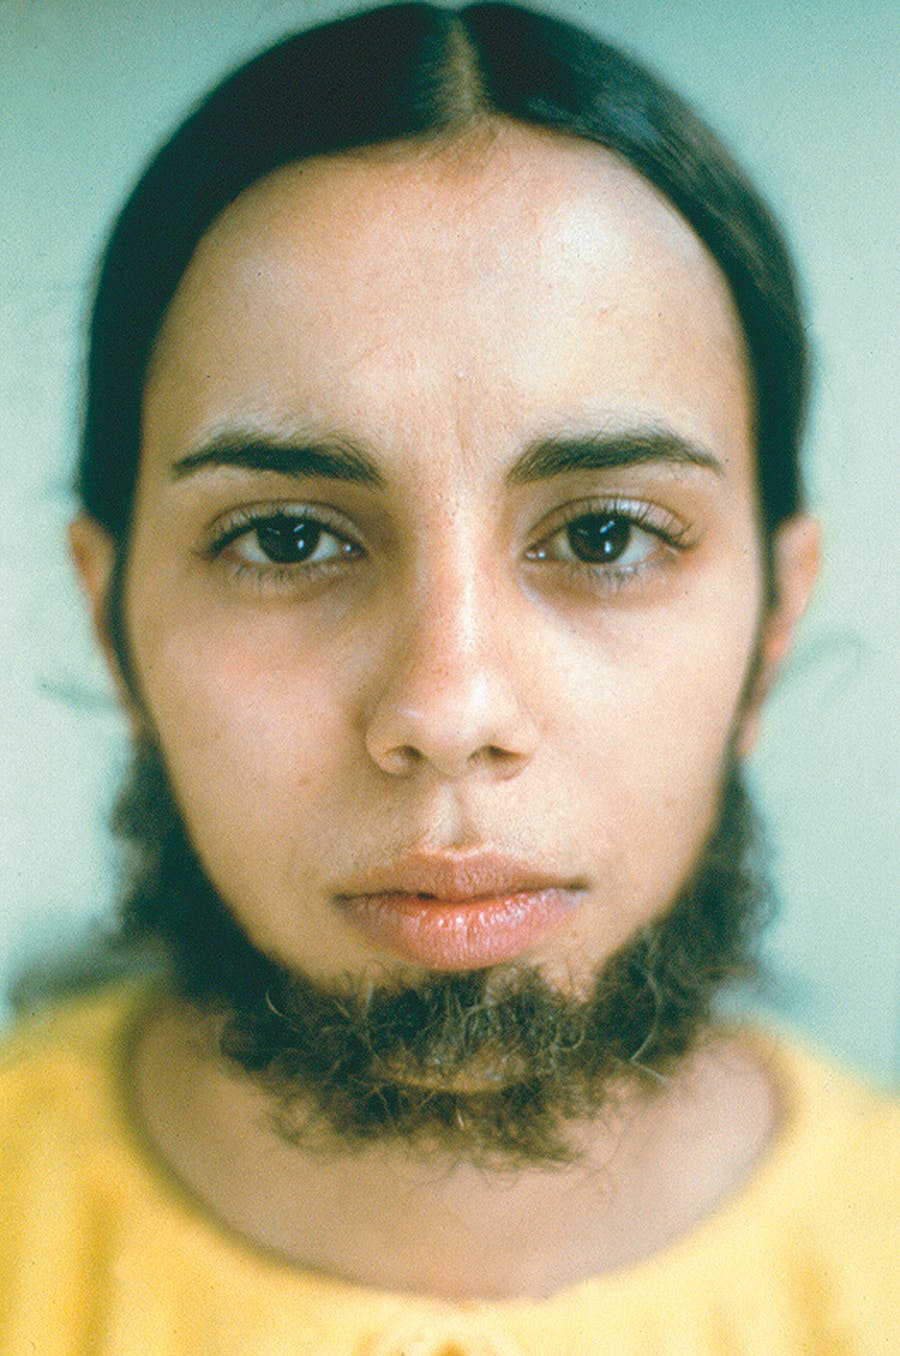 Ana Mendieta, 'Untitled (Facial Hair Transplants)', 1972. Photo: © The Estate of Ana Mendieta Collection, LLC Courtesy Gallery Lelong & Co